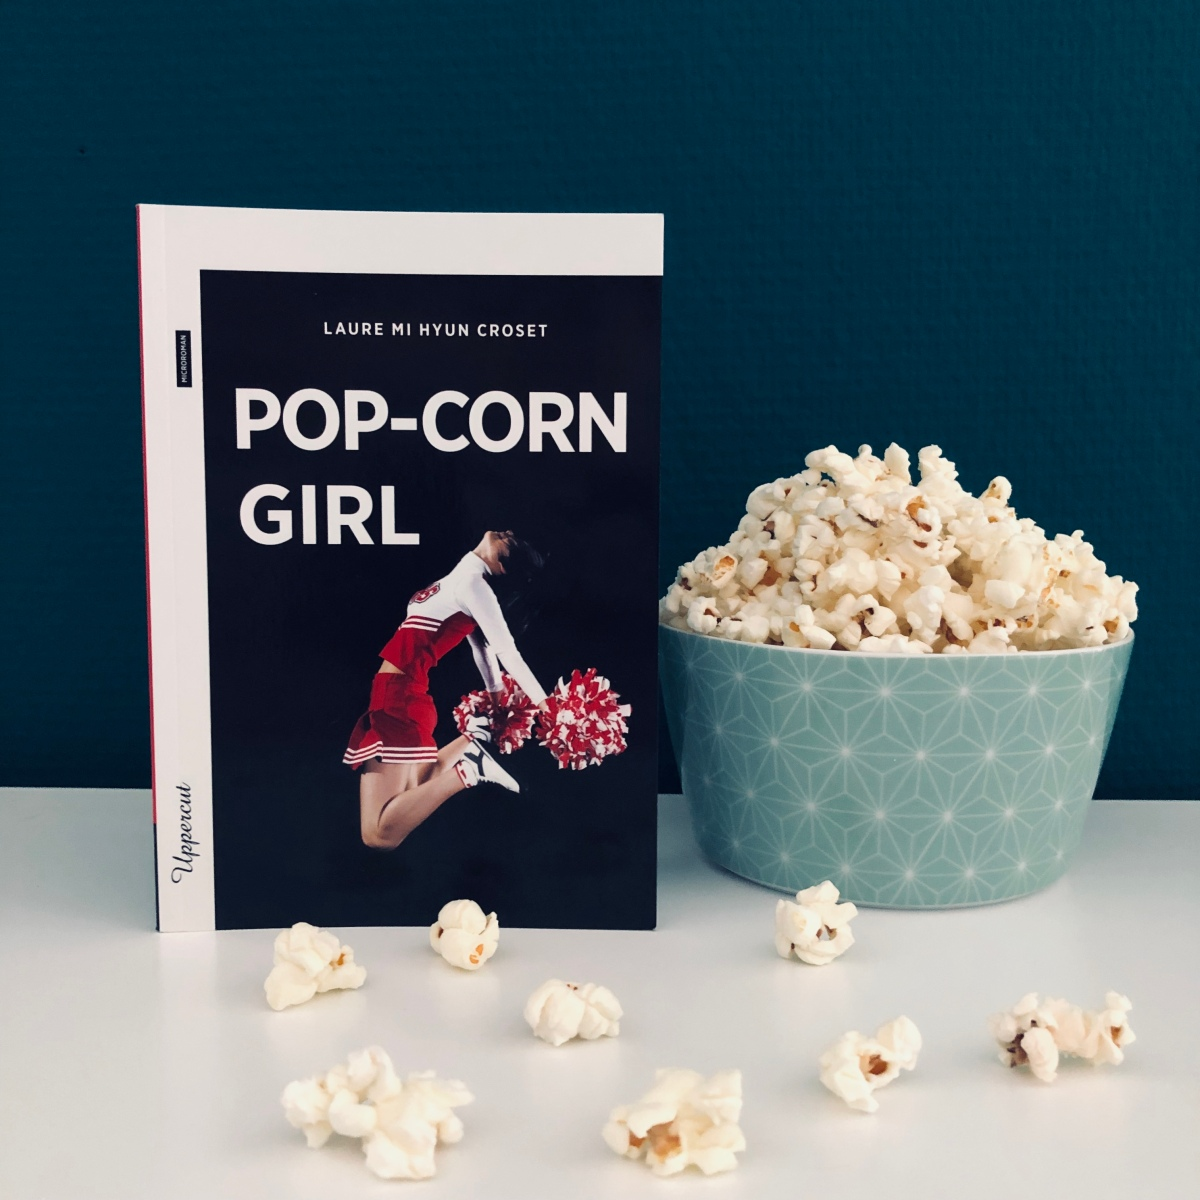 Pop-corn girl de Laure Mi Hyun Croset